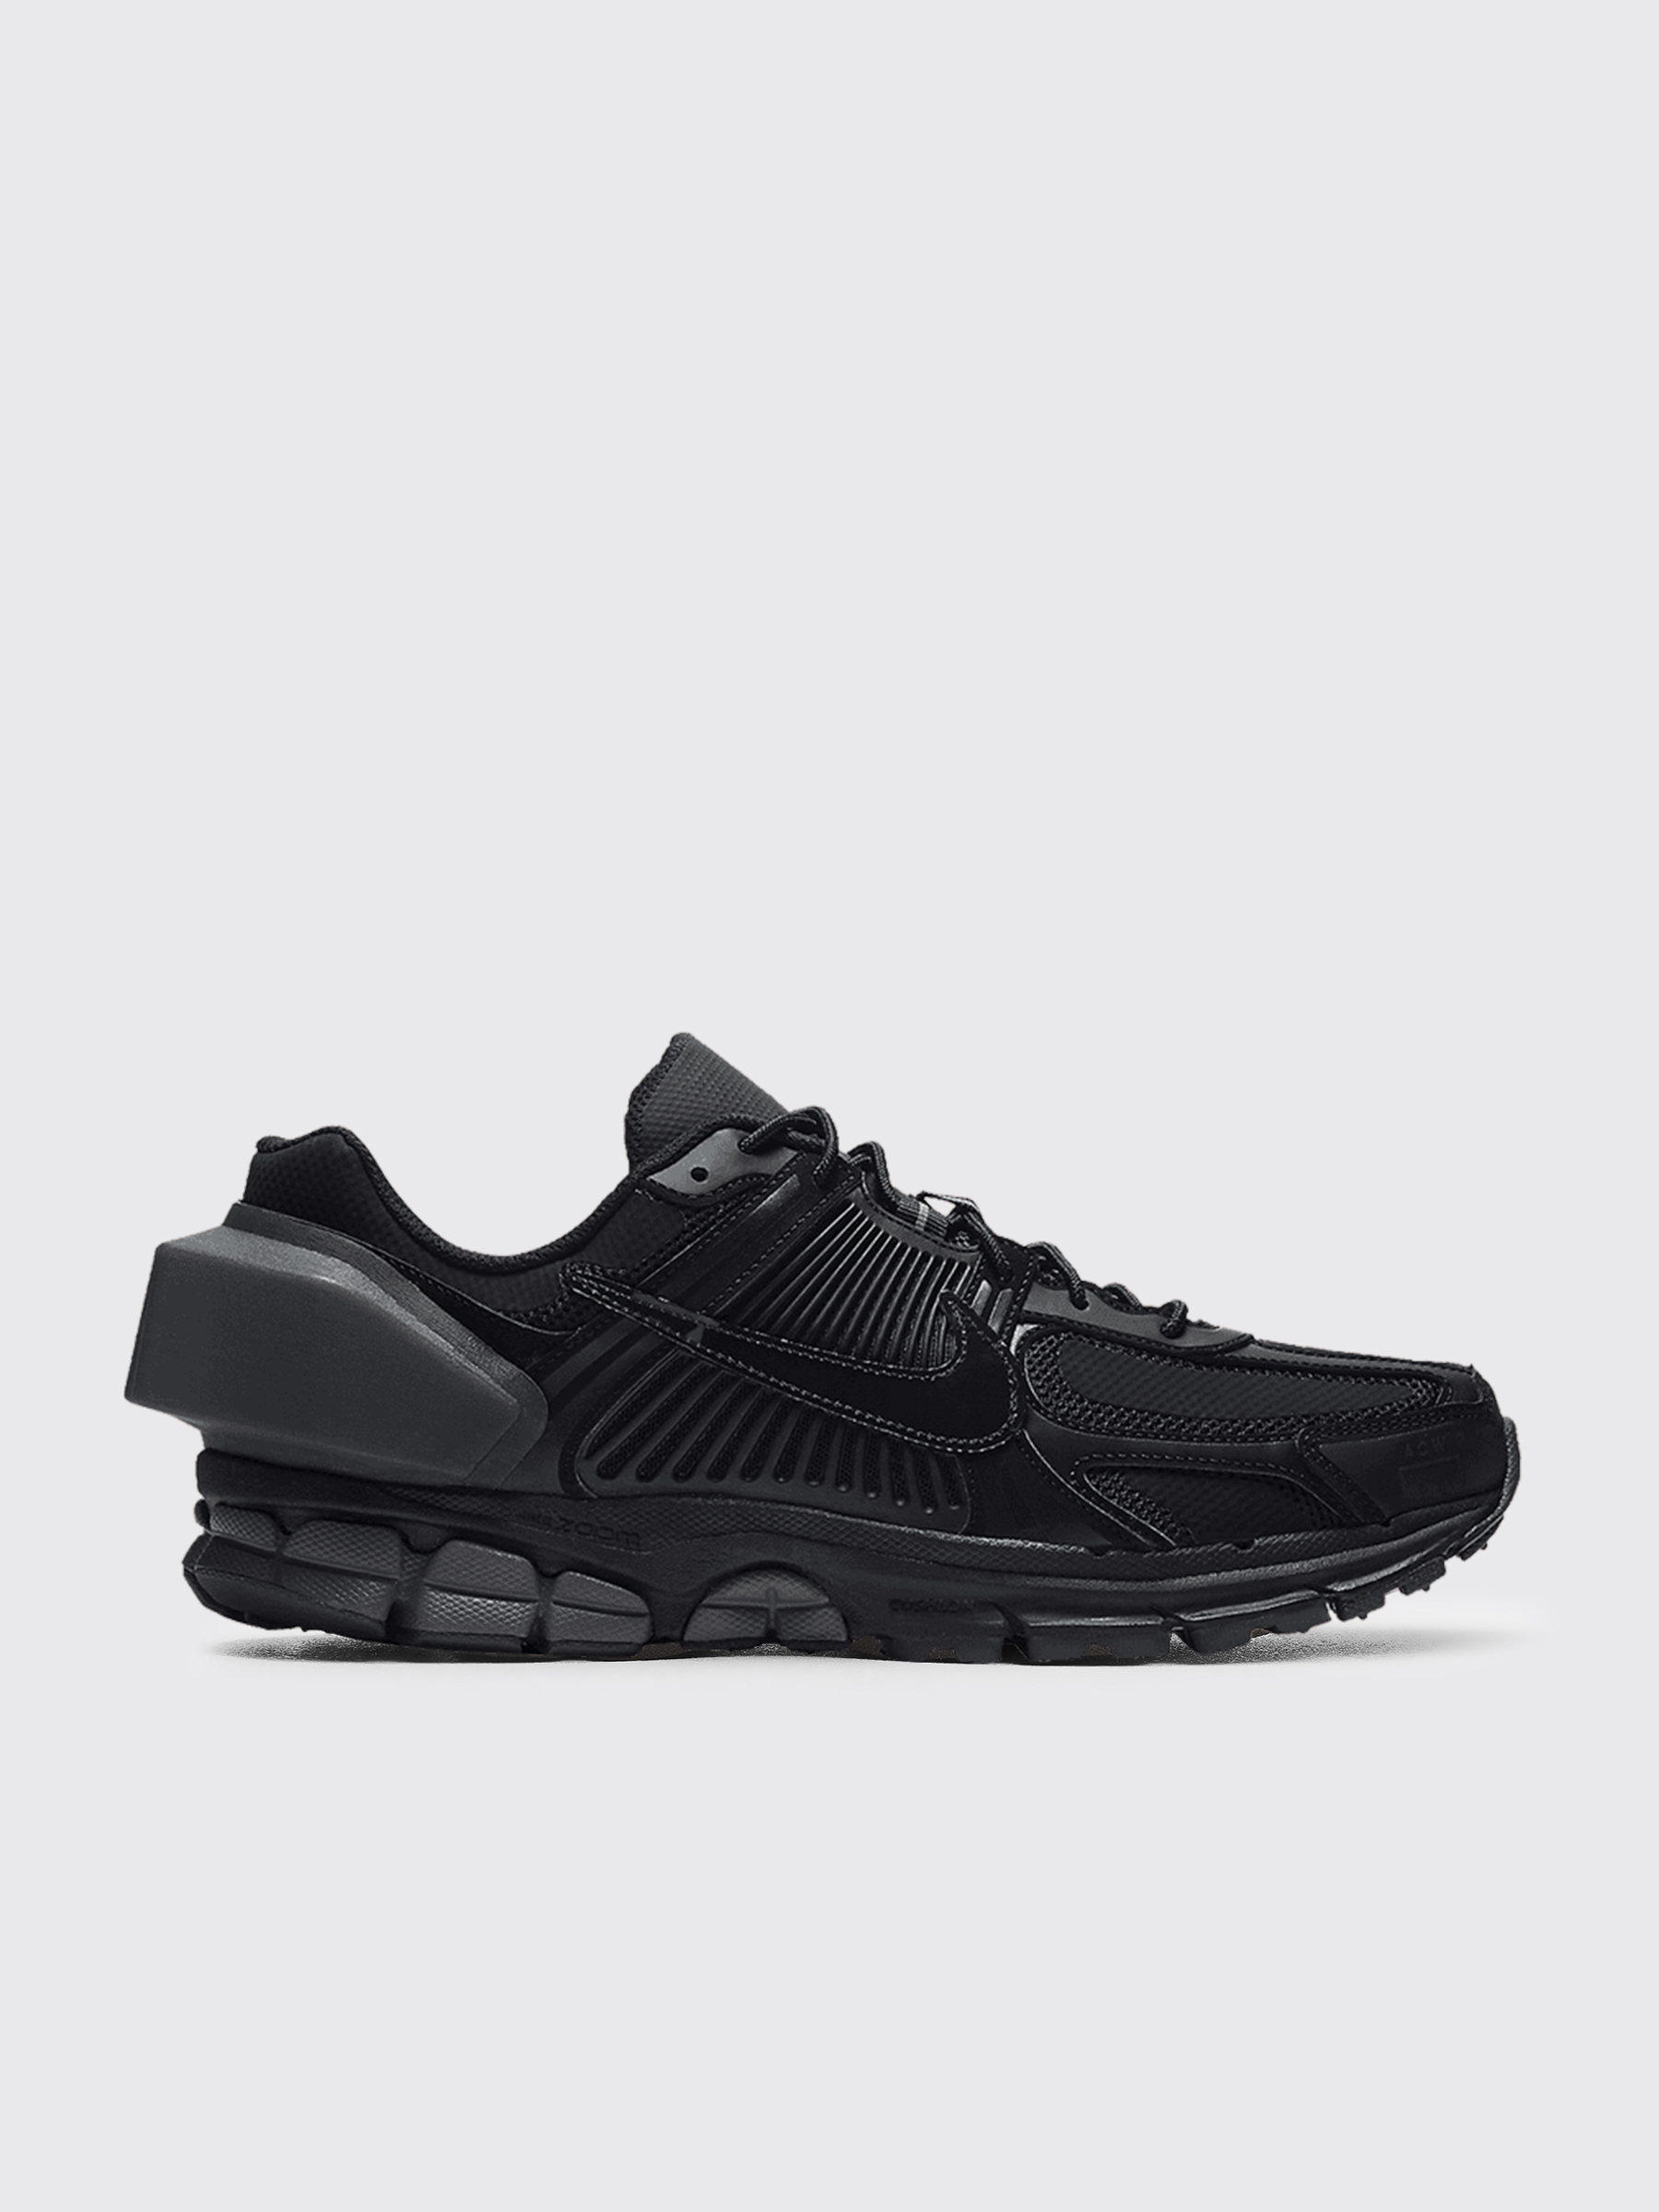 newest b21df 720c4 Très Bien - Nike x A-Cold-Wall  Zoom Vomero 5 Black   Reflect Silver